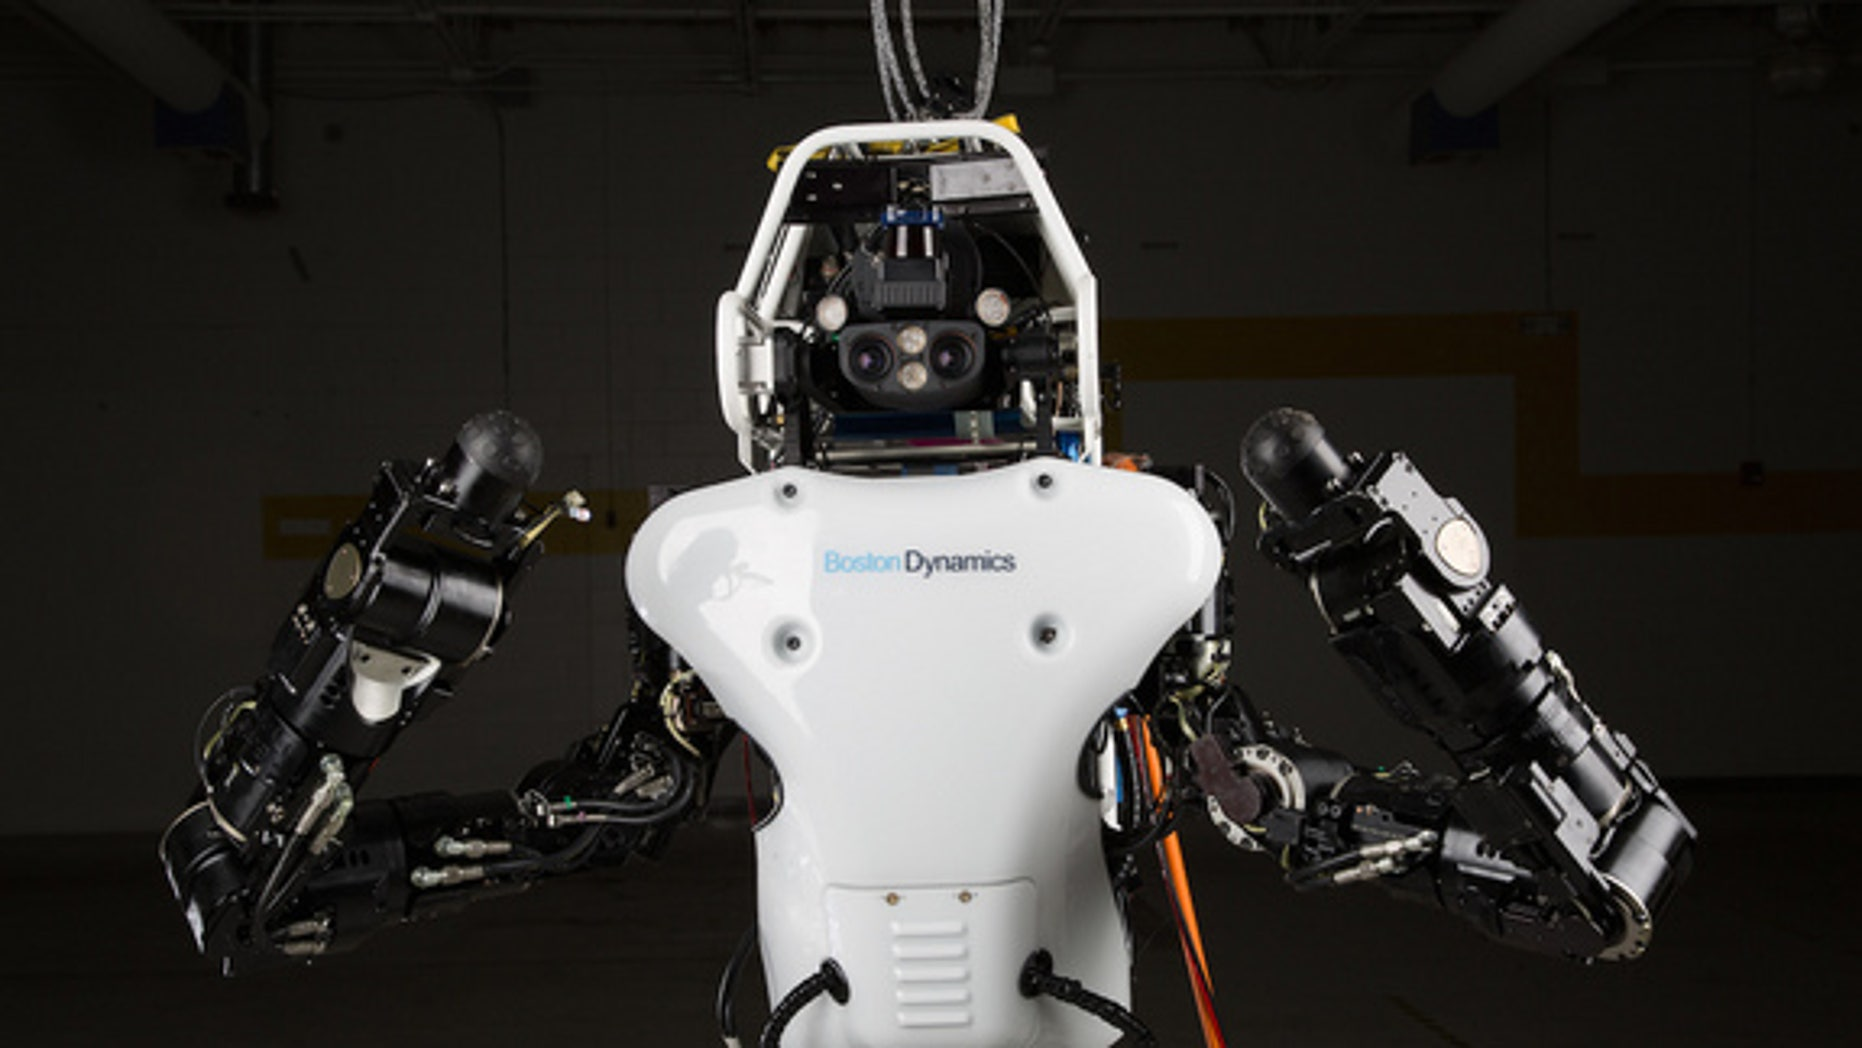 DARPA's Atlas robot has been revamped ahead of this summer's competition. But robotics teams will have to develop their own software for the improved bot.